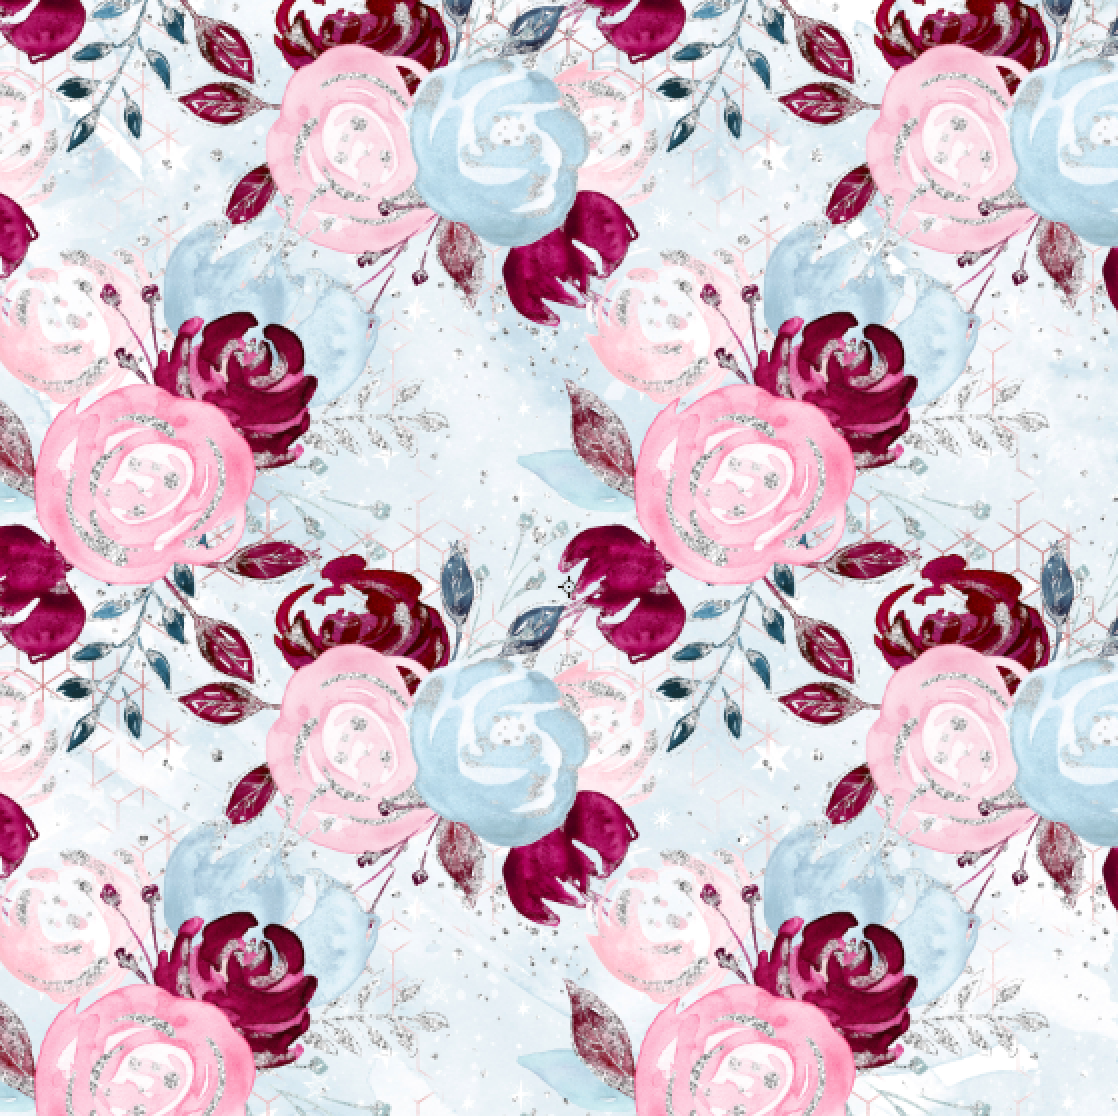 PRE ORDER - Christmas Unicorns Blue Floral - Digital Fabric Print